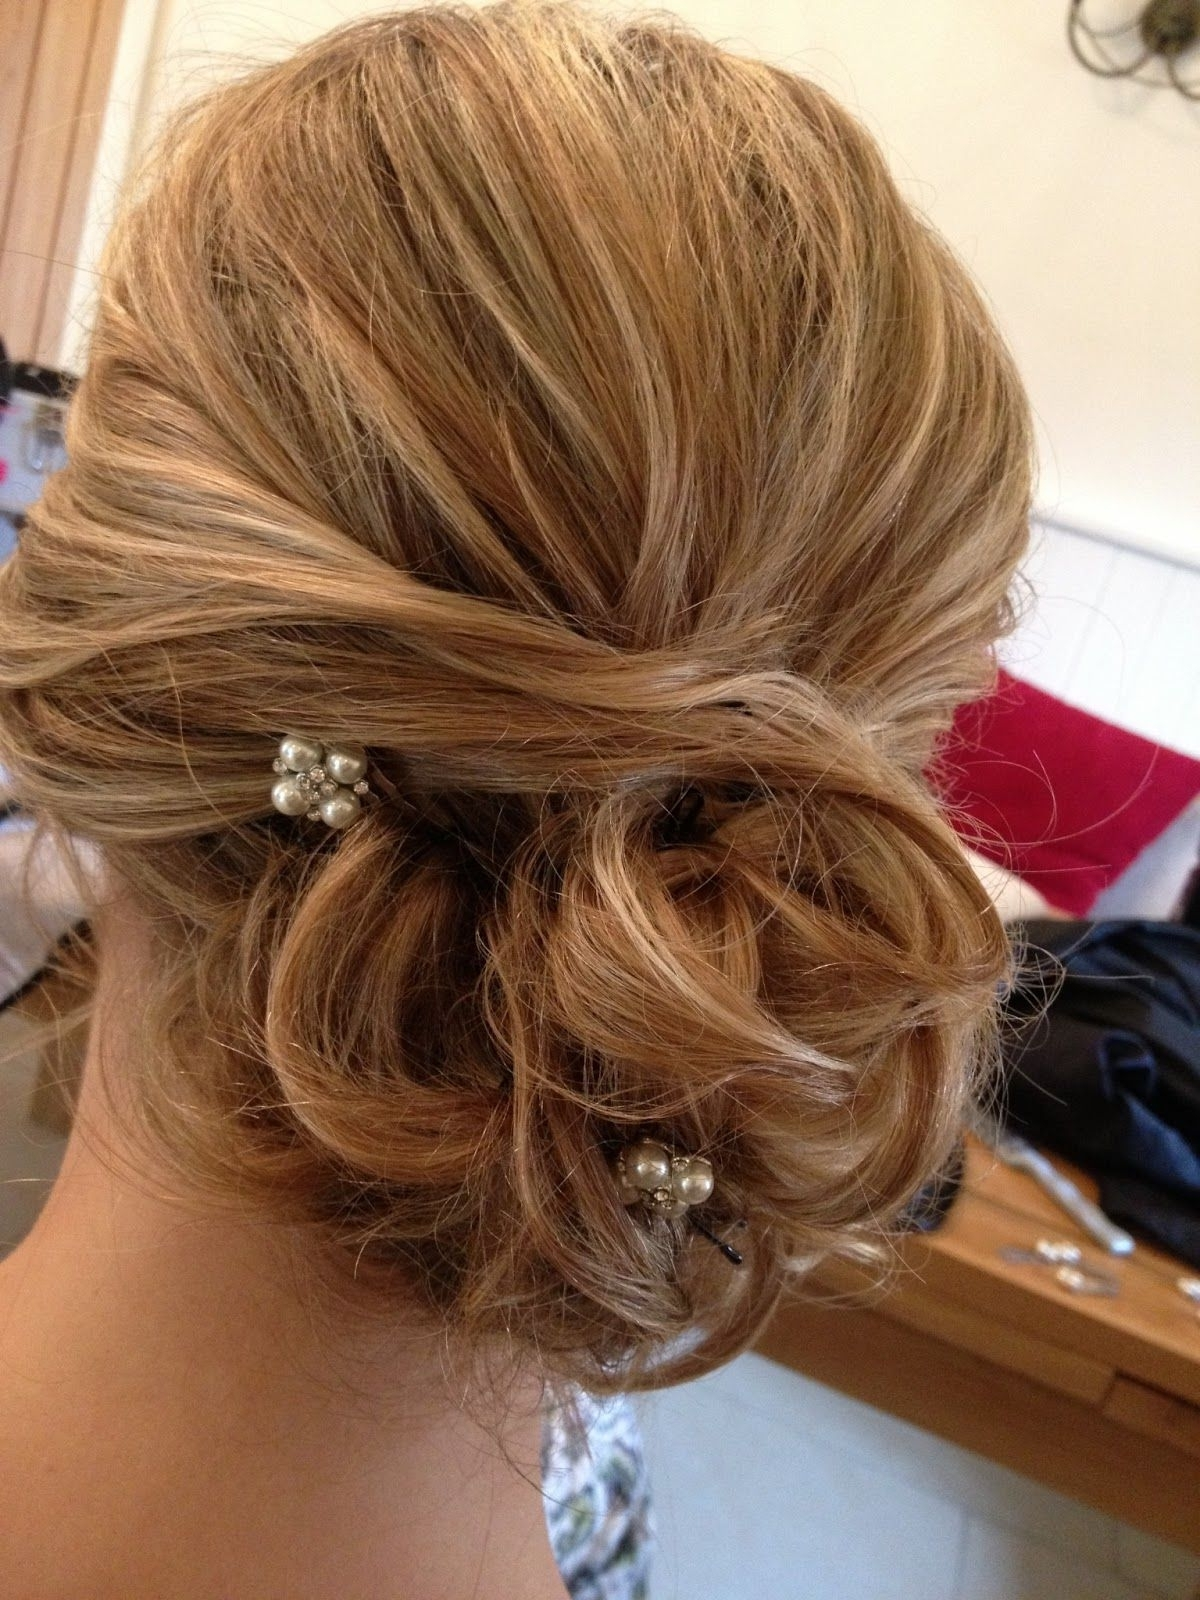 Showing Pic Gallery For > Wedding Hairstyles Side Bun With Flower Within Preferred Buns To The Side Wedding Hairstyles (View 6 of 15)